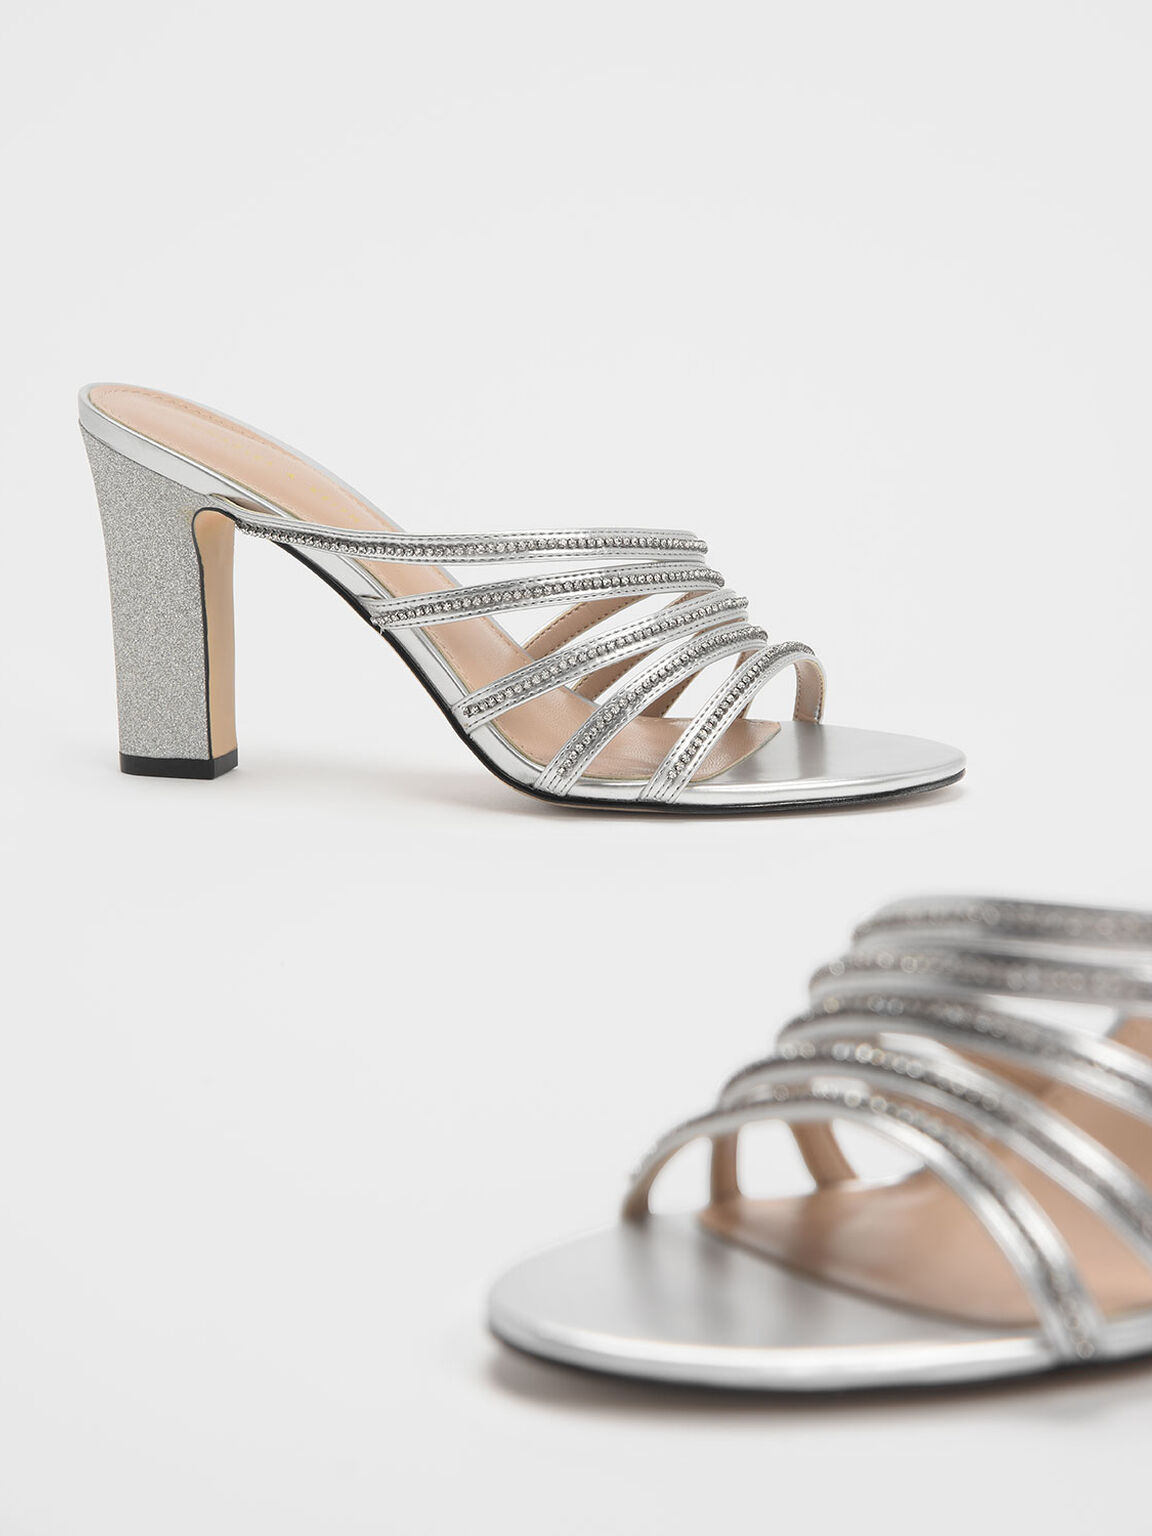 Embellished Strappy Heeled Slide Sandals, Silver, hi-res